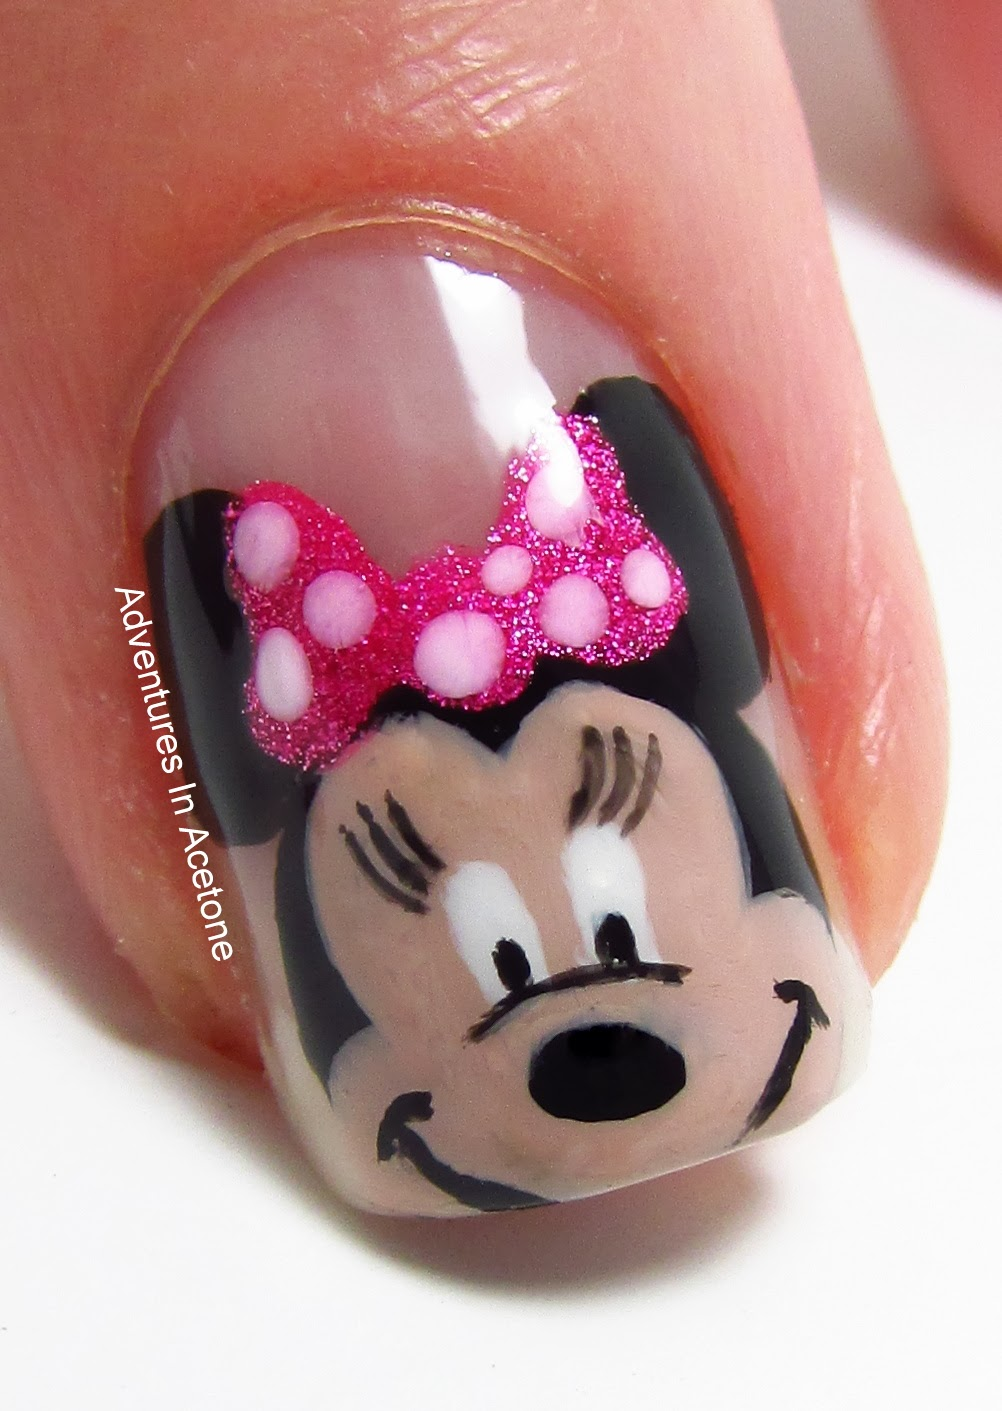 Minnie Inspired By Oli123 - Nail Art Gallery by NAILS Magazine | Best of  Nail Art Gallery | Pinterest | Nails magazine, Nail art galleries and  Youtube nail ... - Minnie Inspired By Oli123 - Nail Art Gallery By NAILS Magazine